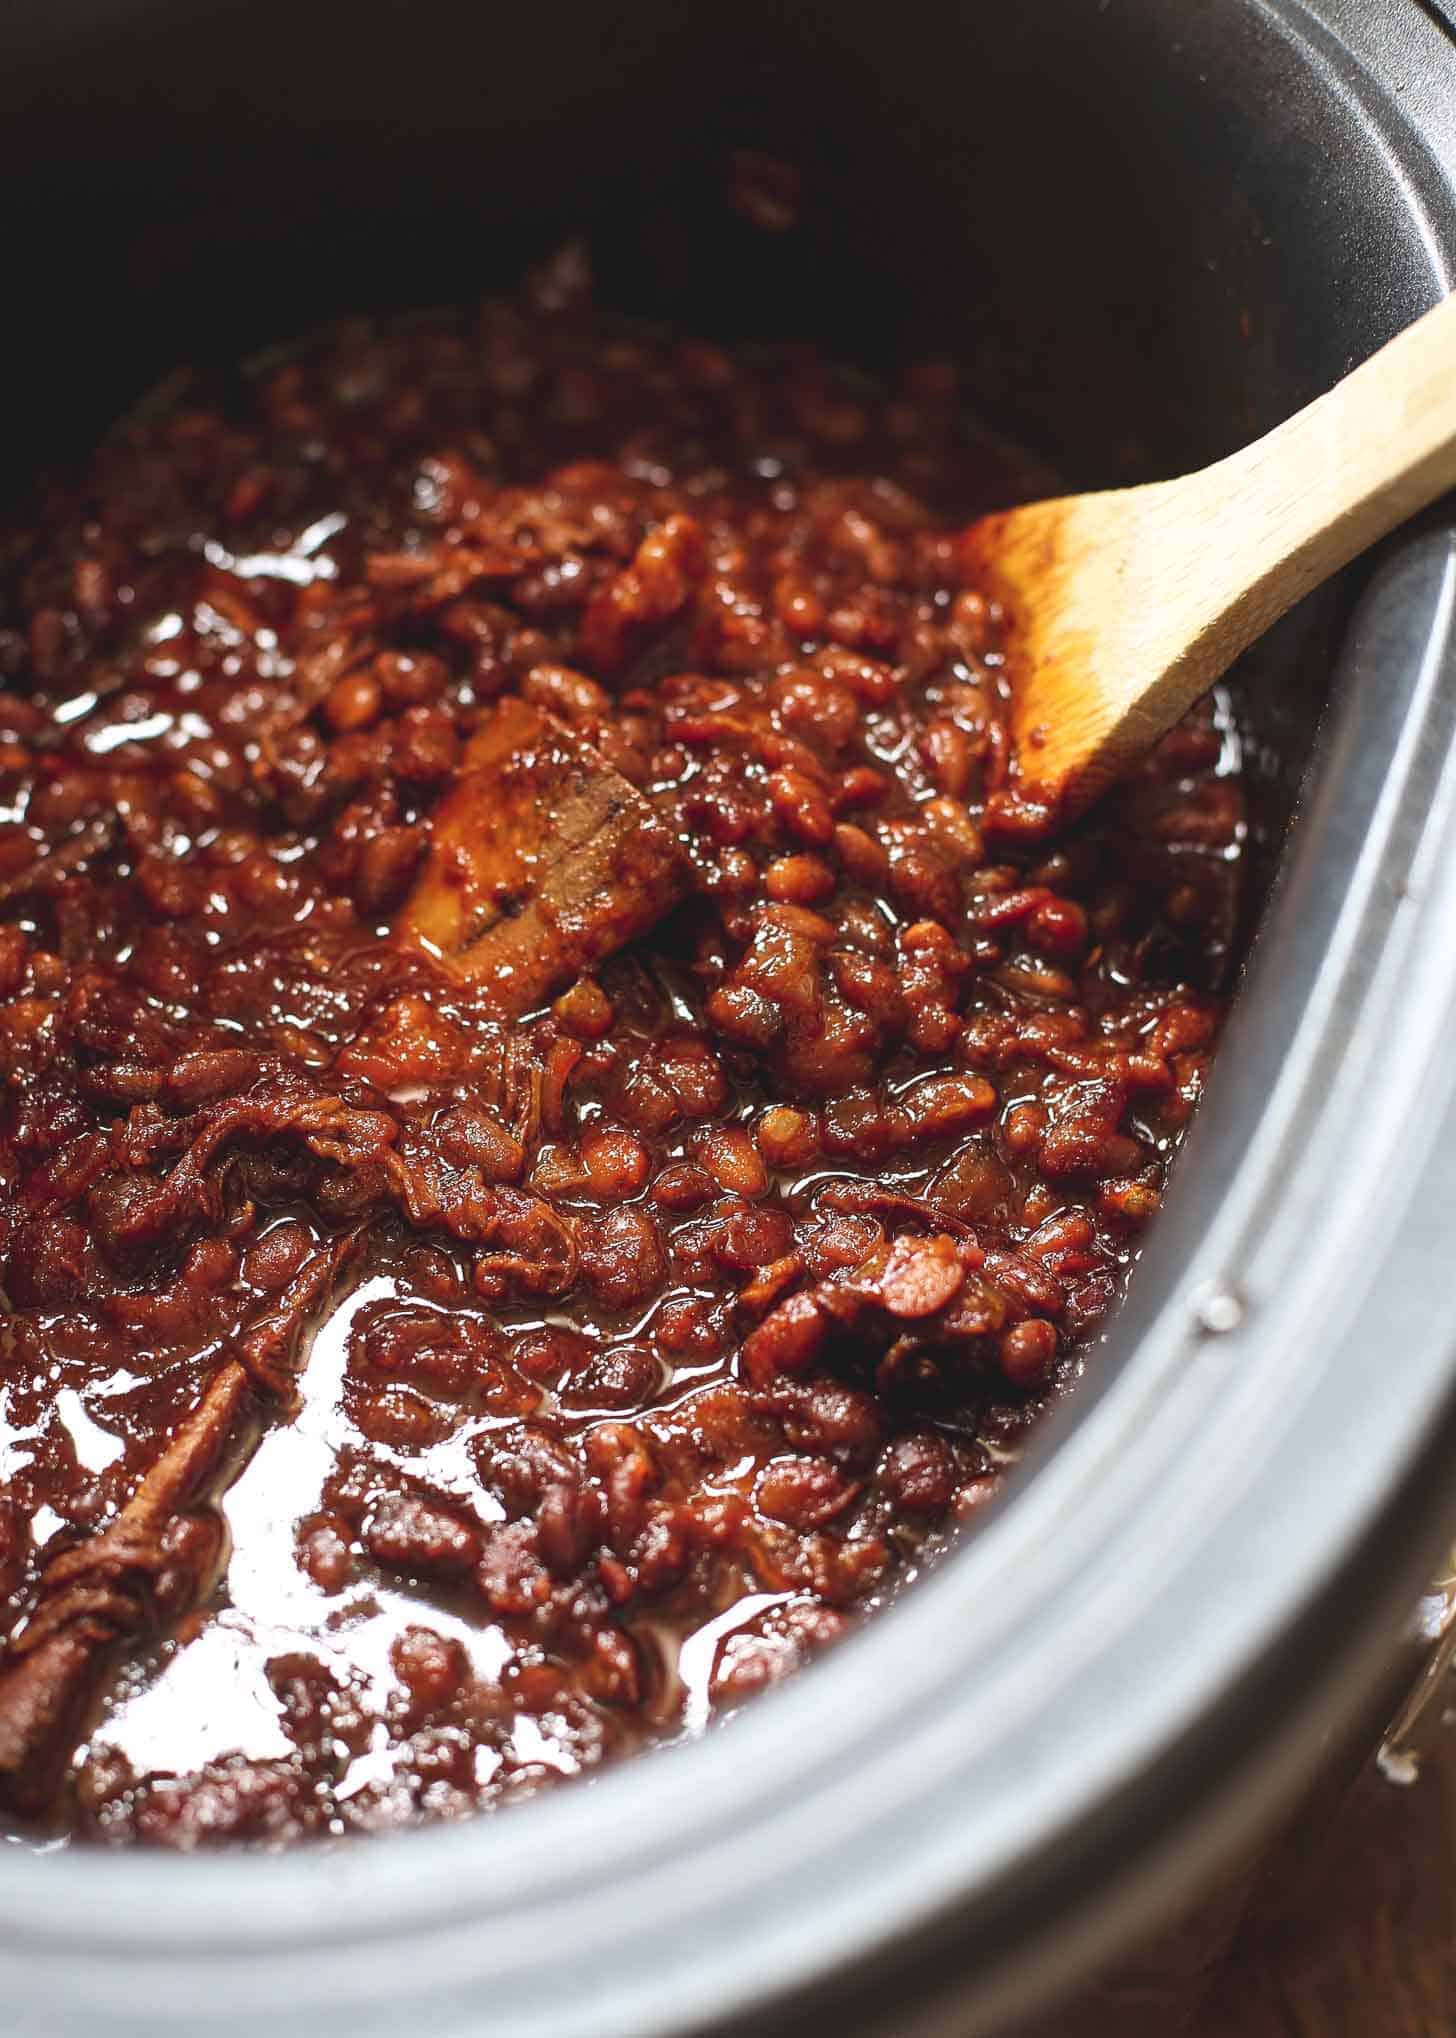 Baked Beans in a slow cooker